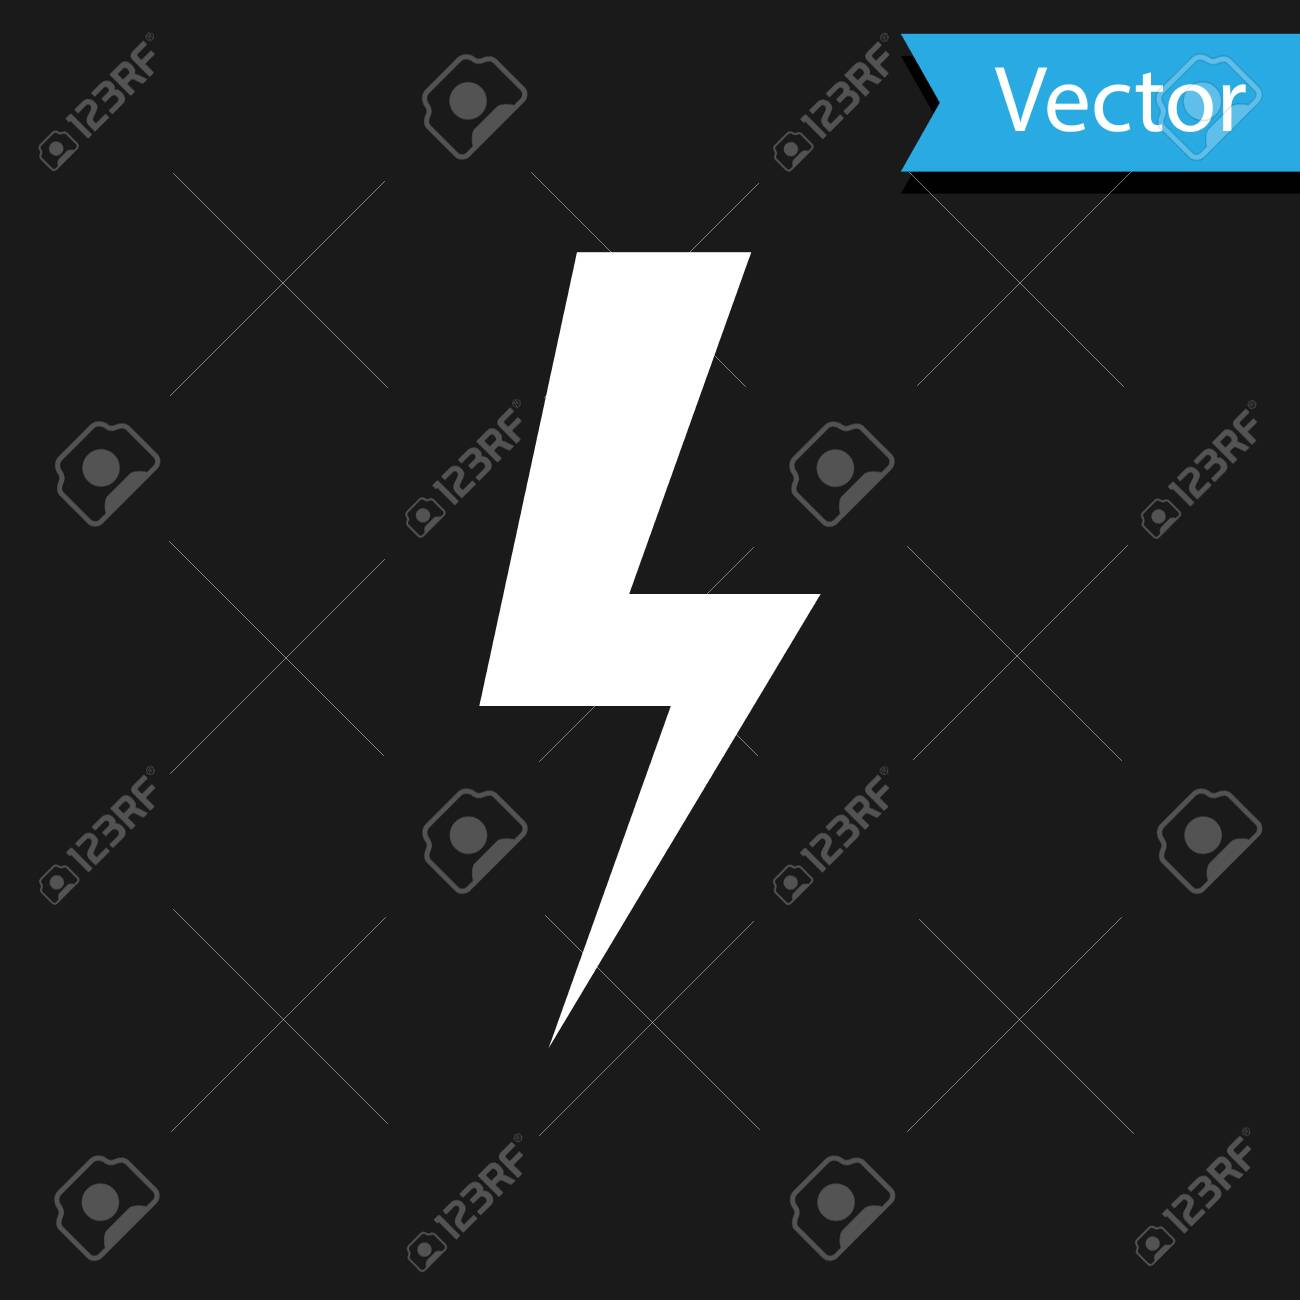 White Lightning Bolt Icon Isolated On Black Background Flash Royalty Free Cliparts Vectors And Stock Illustration Image 120833630